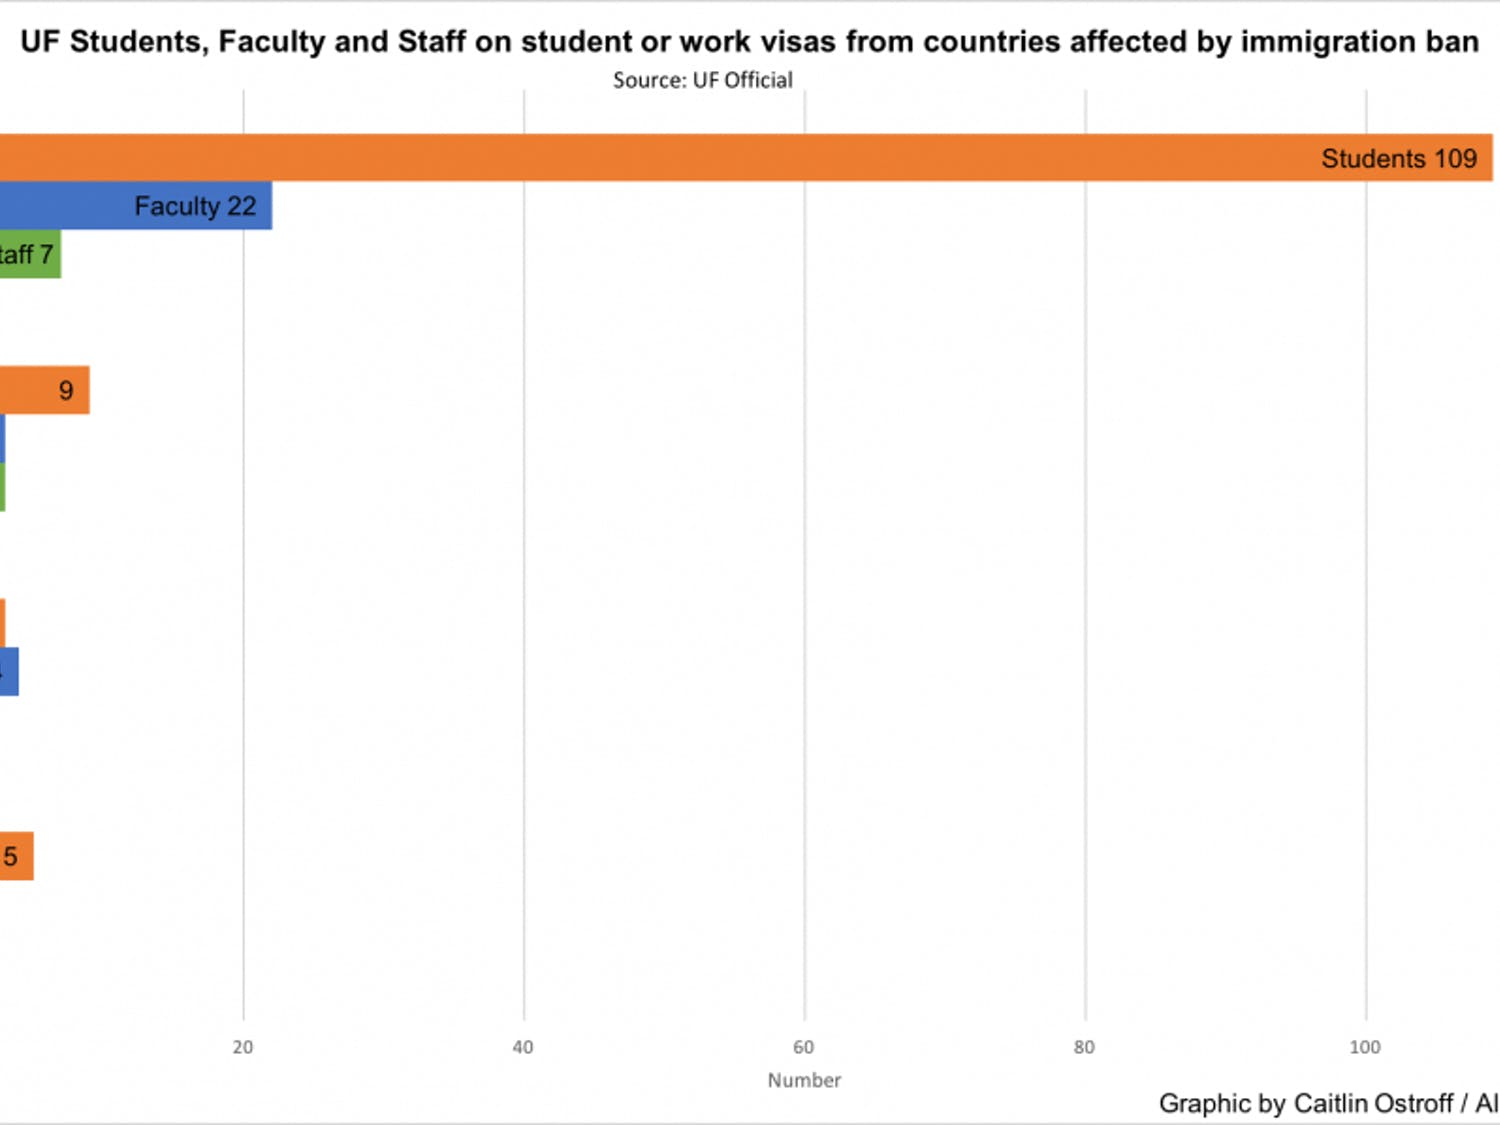 In total, 167 UF students, faculty and staff combined come from one of the seven countries affected by President Donald Trump's immigration ban. No students, faculty or staff come from Somalia, Sudan or Yemen. These people do not hold a green card or have permanent residency but study or work at UF on scholar or work visas.